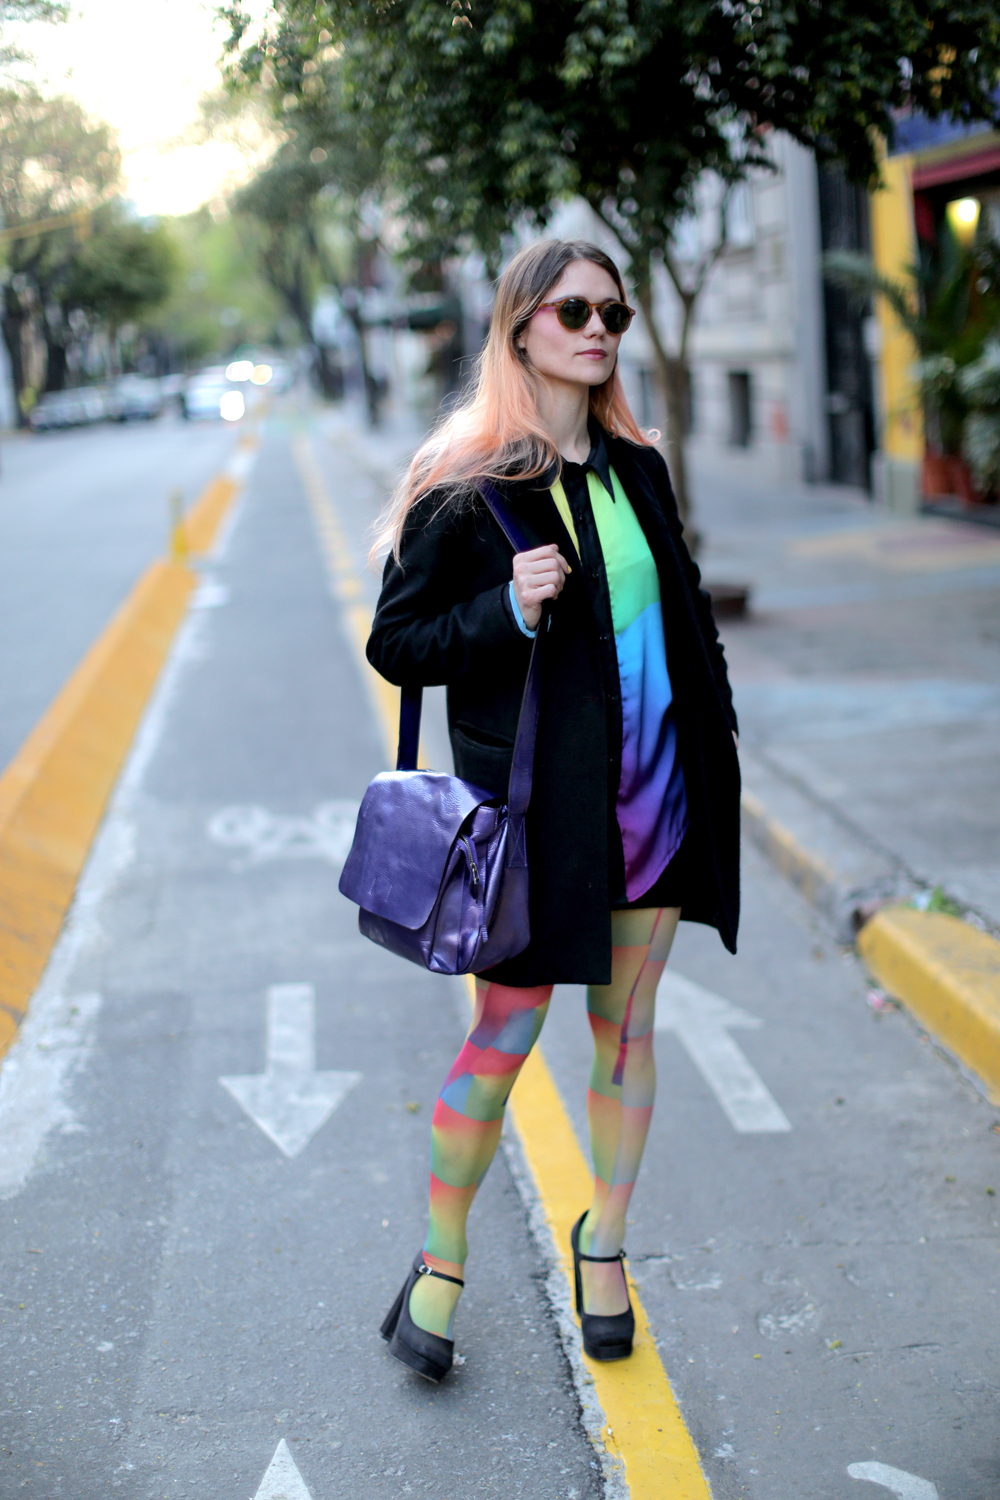 afcortes_streetstyle_-3.jpg